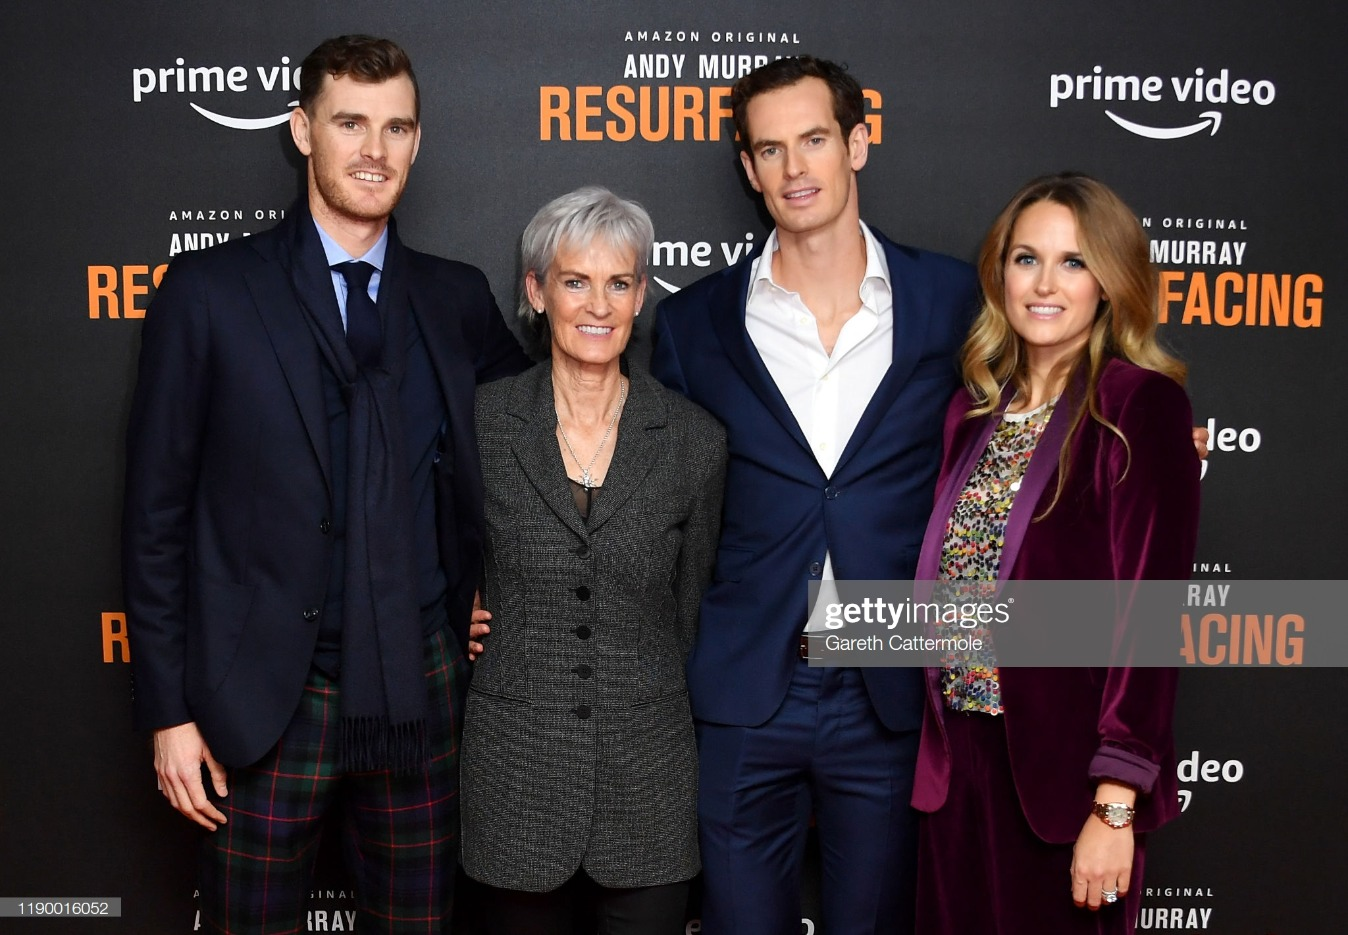 """Andy Murray: Resurfacing"" World Premiere - Red Carpet Arrivals : News Photo"